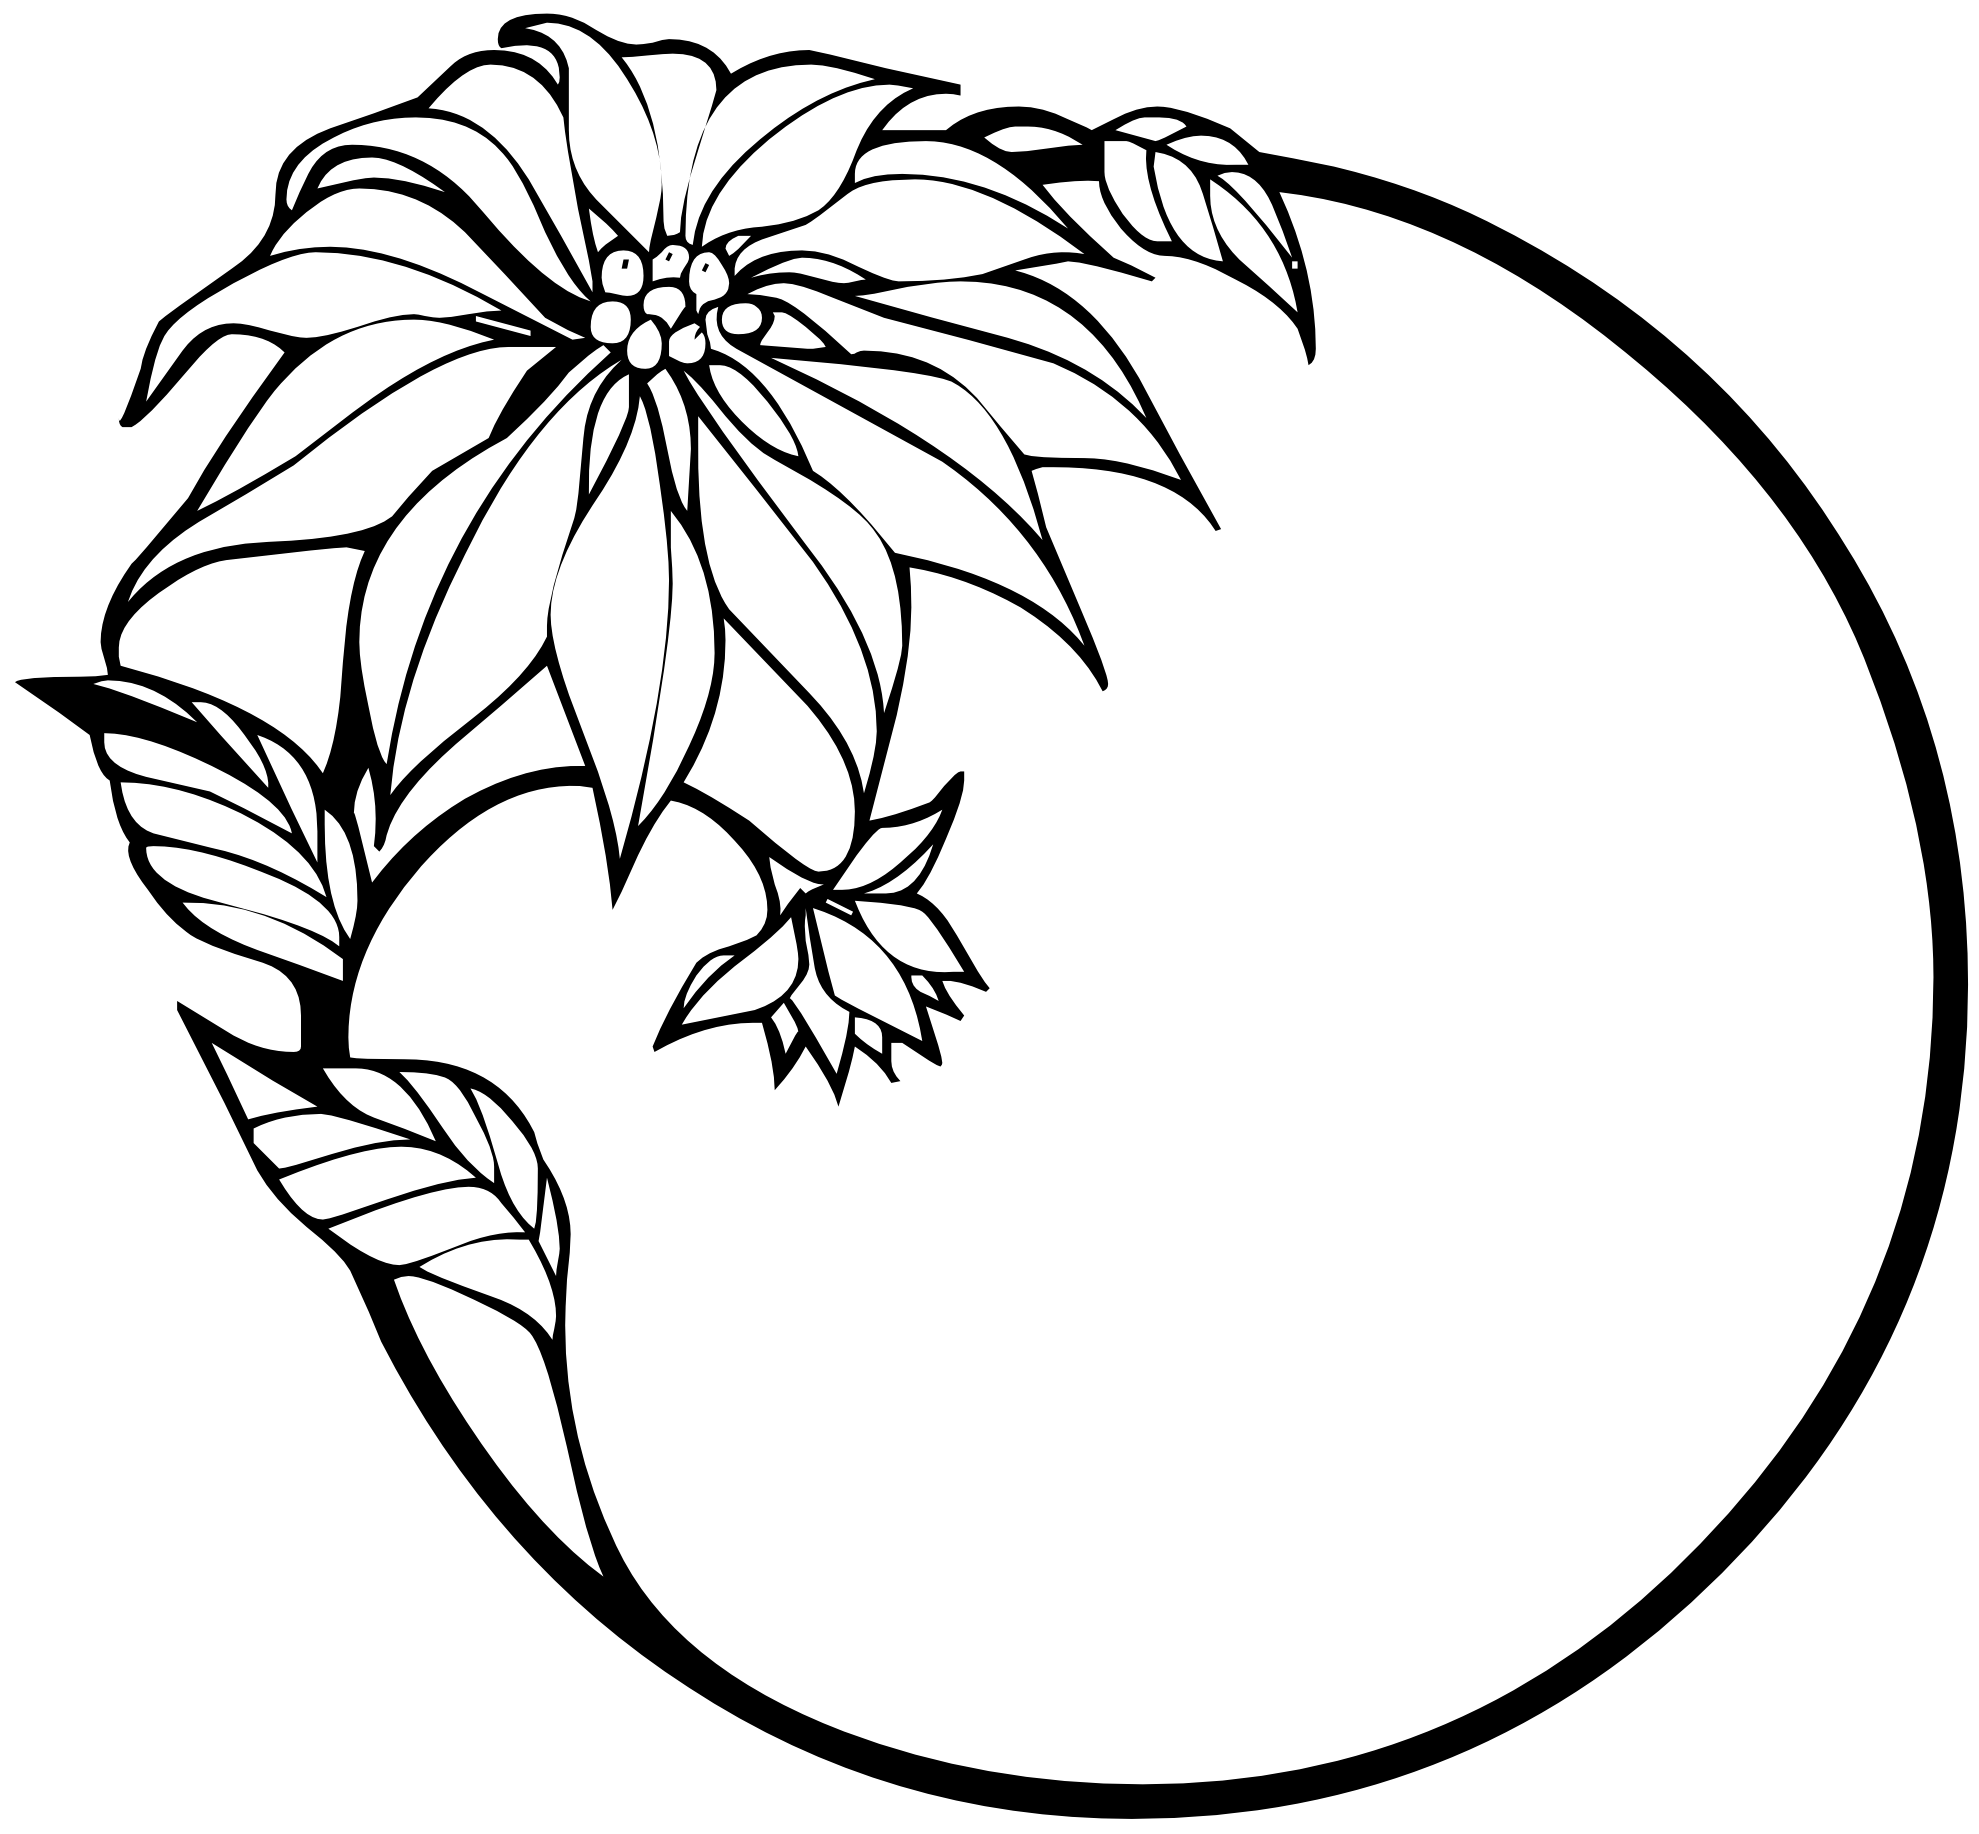 Flower  black and white flower clipart black and white border